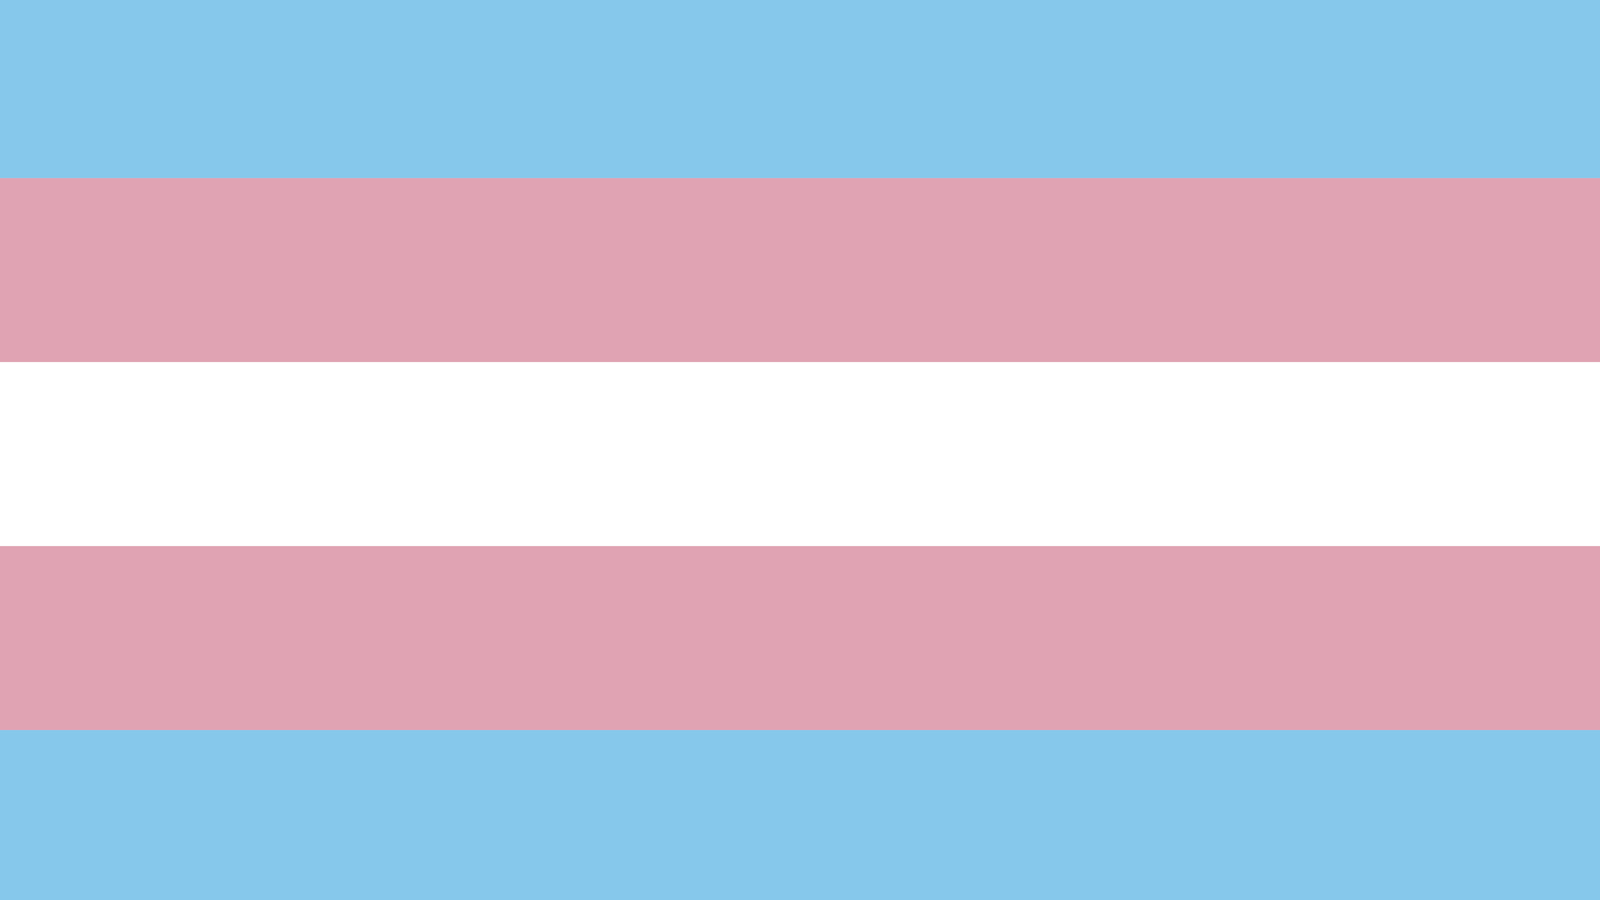 National Center for Transgender Equality Releases 2015 Transgender Survey